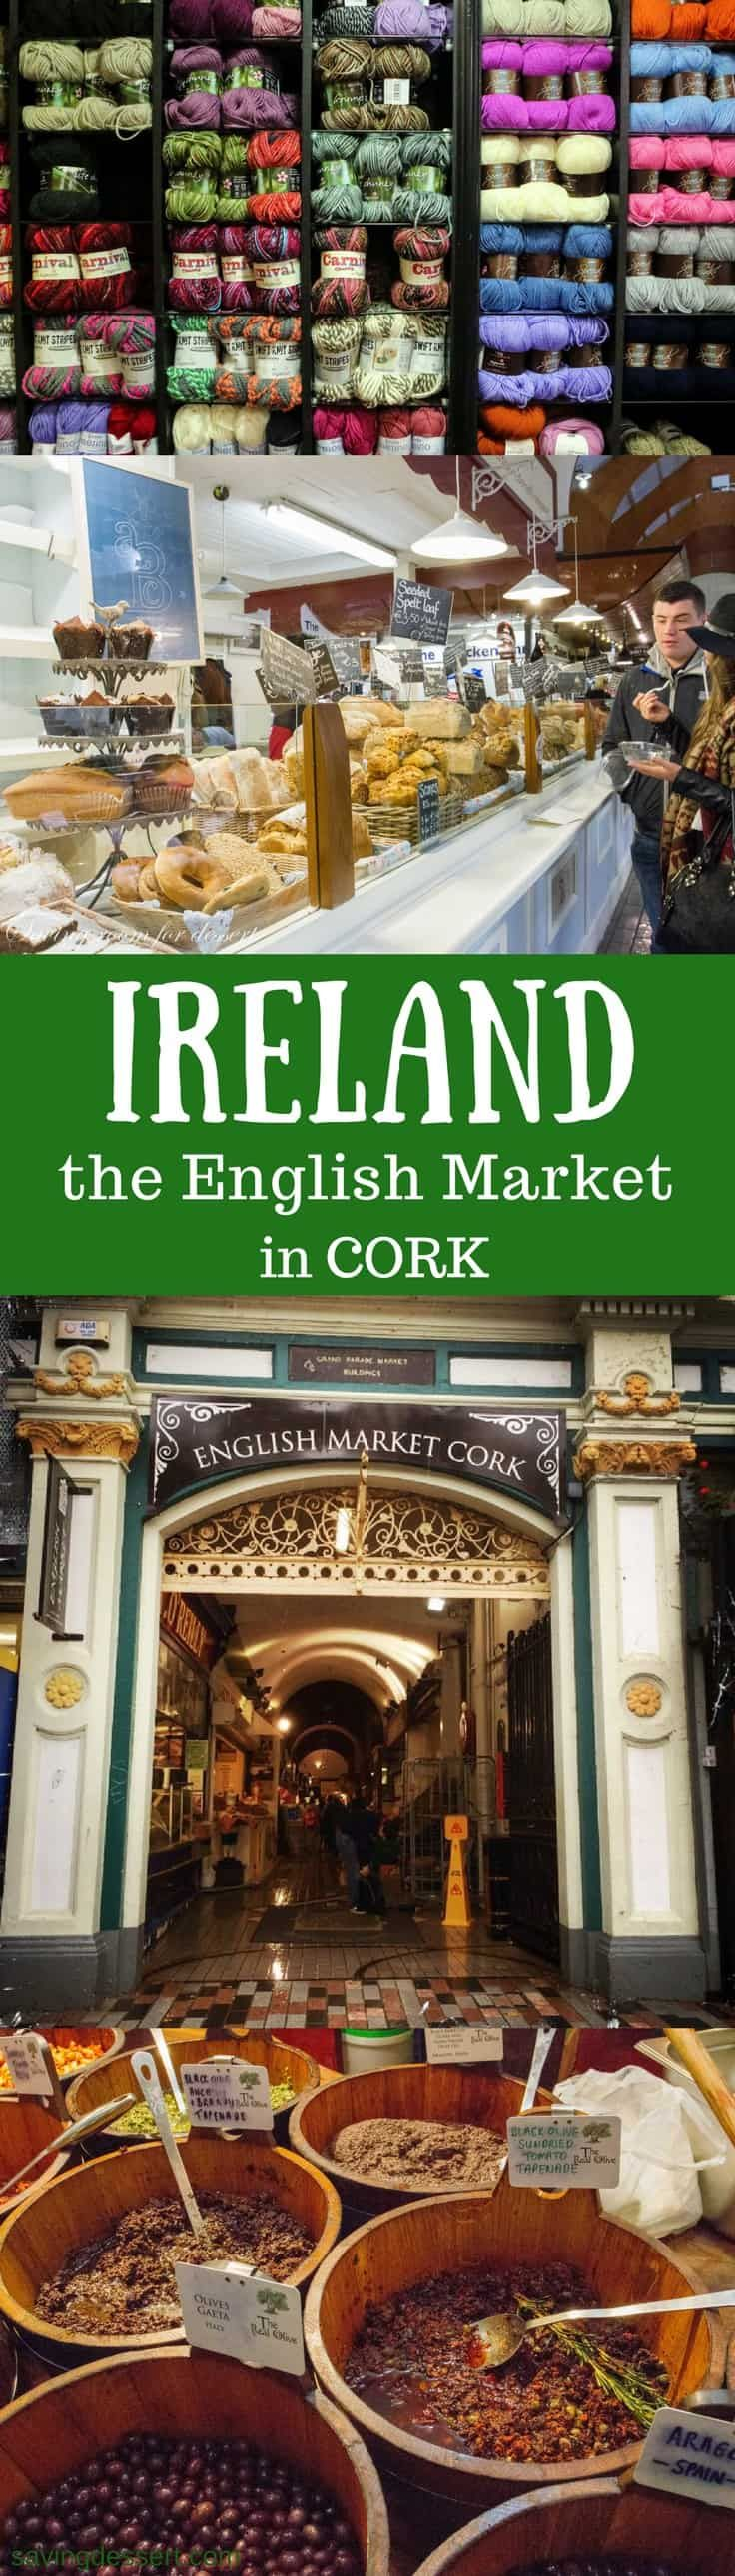 Cork Ireland - The Cork English Market has a fascinating history dating as far back as 1786. That's before the United States had it's first president! The market officially opened in August of 1788 and continues to thrive today.